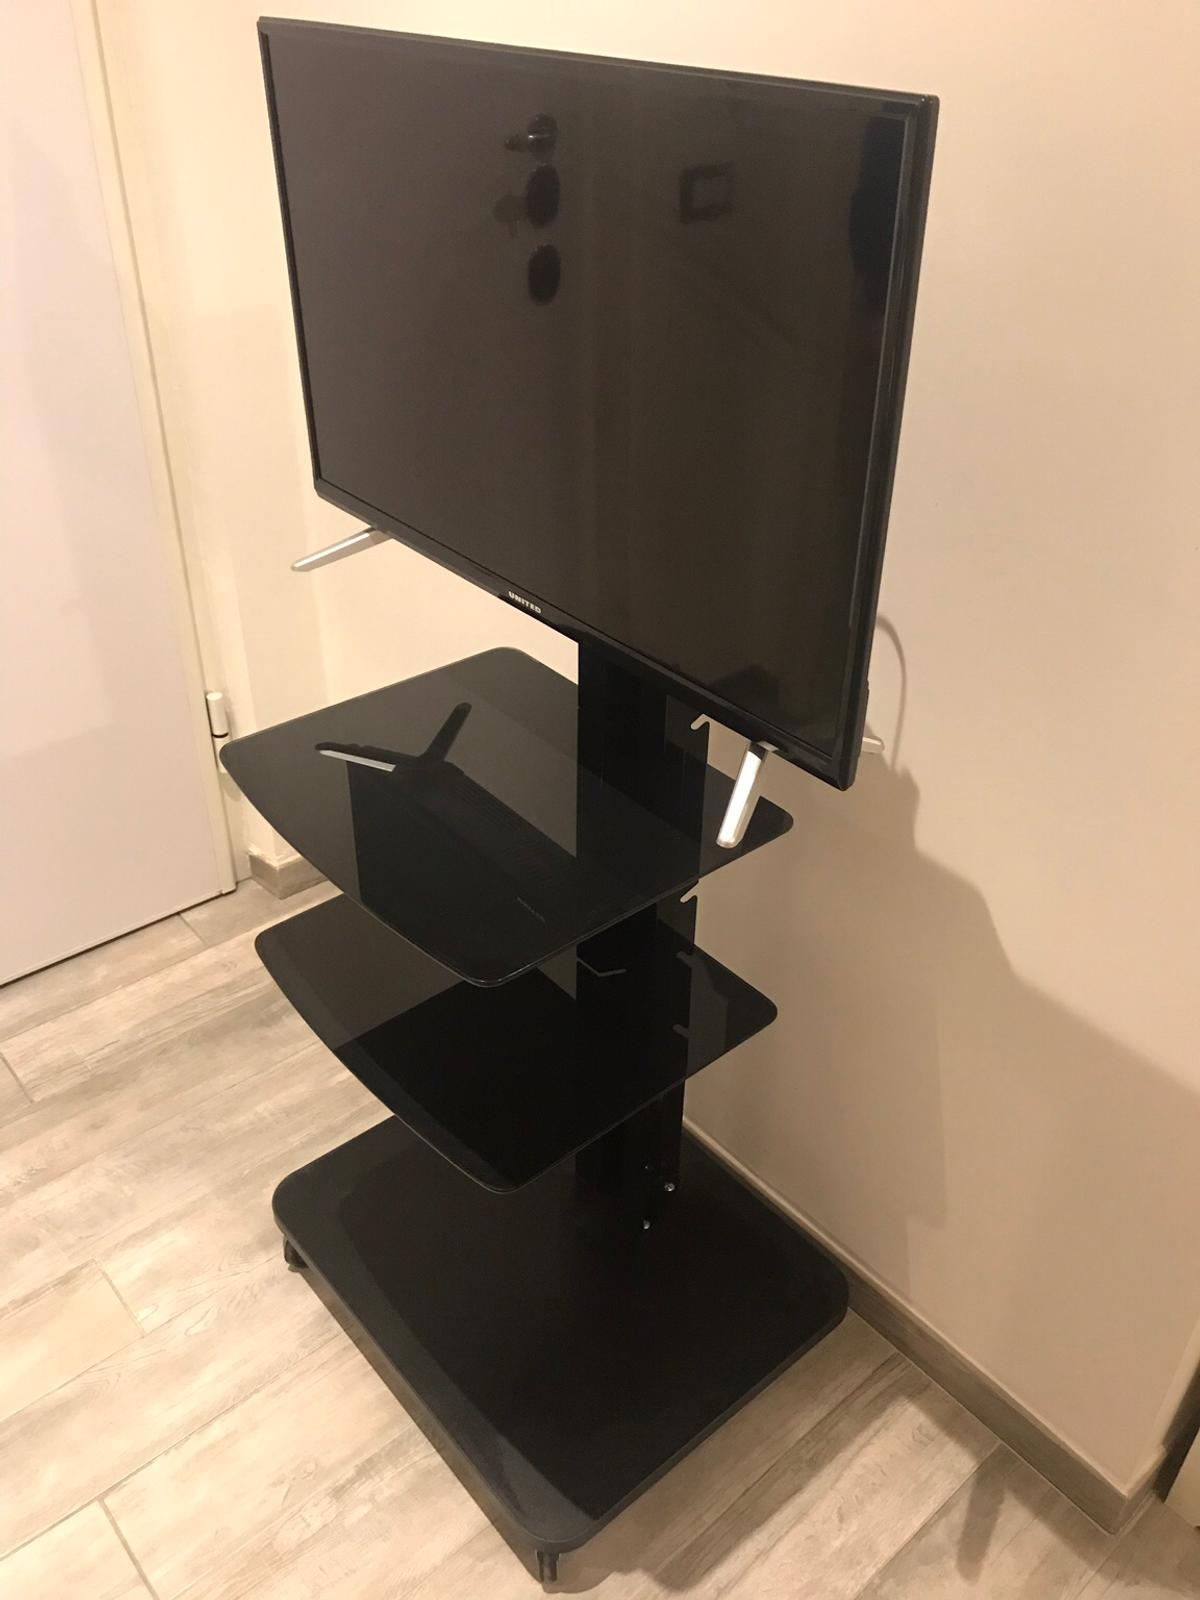 Mobile Porta Tv Meliconi.Mobile Porta Tv Meliconi In 00142 Roma For 35 00 For Sale